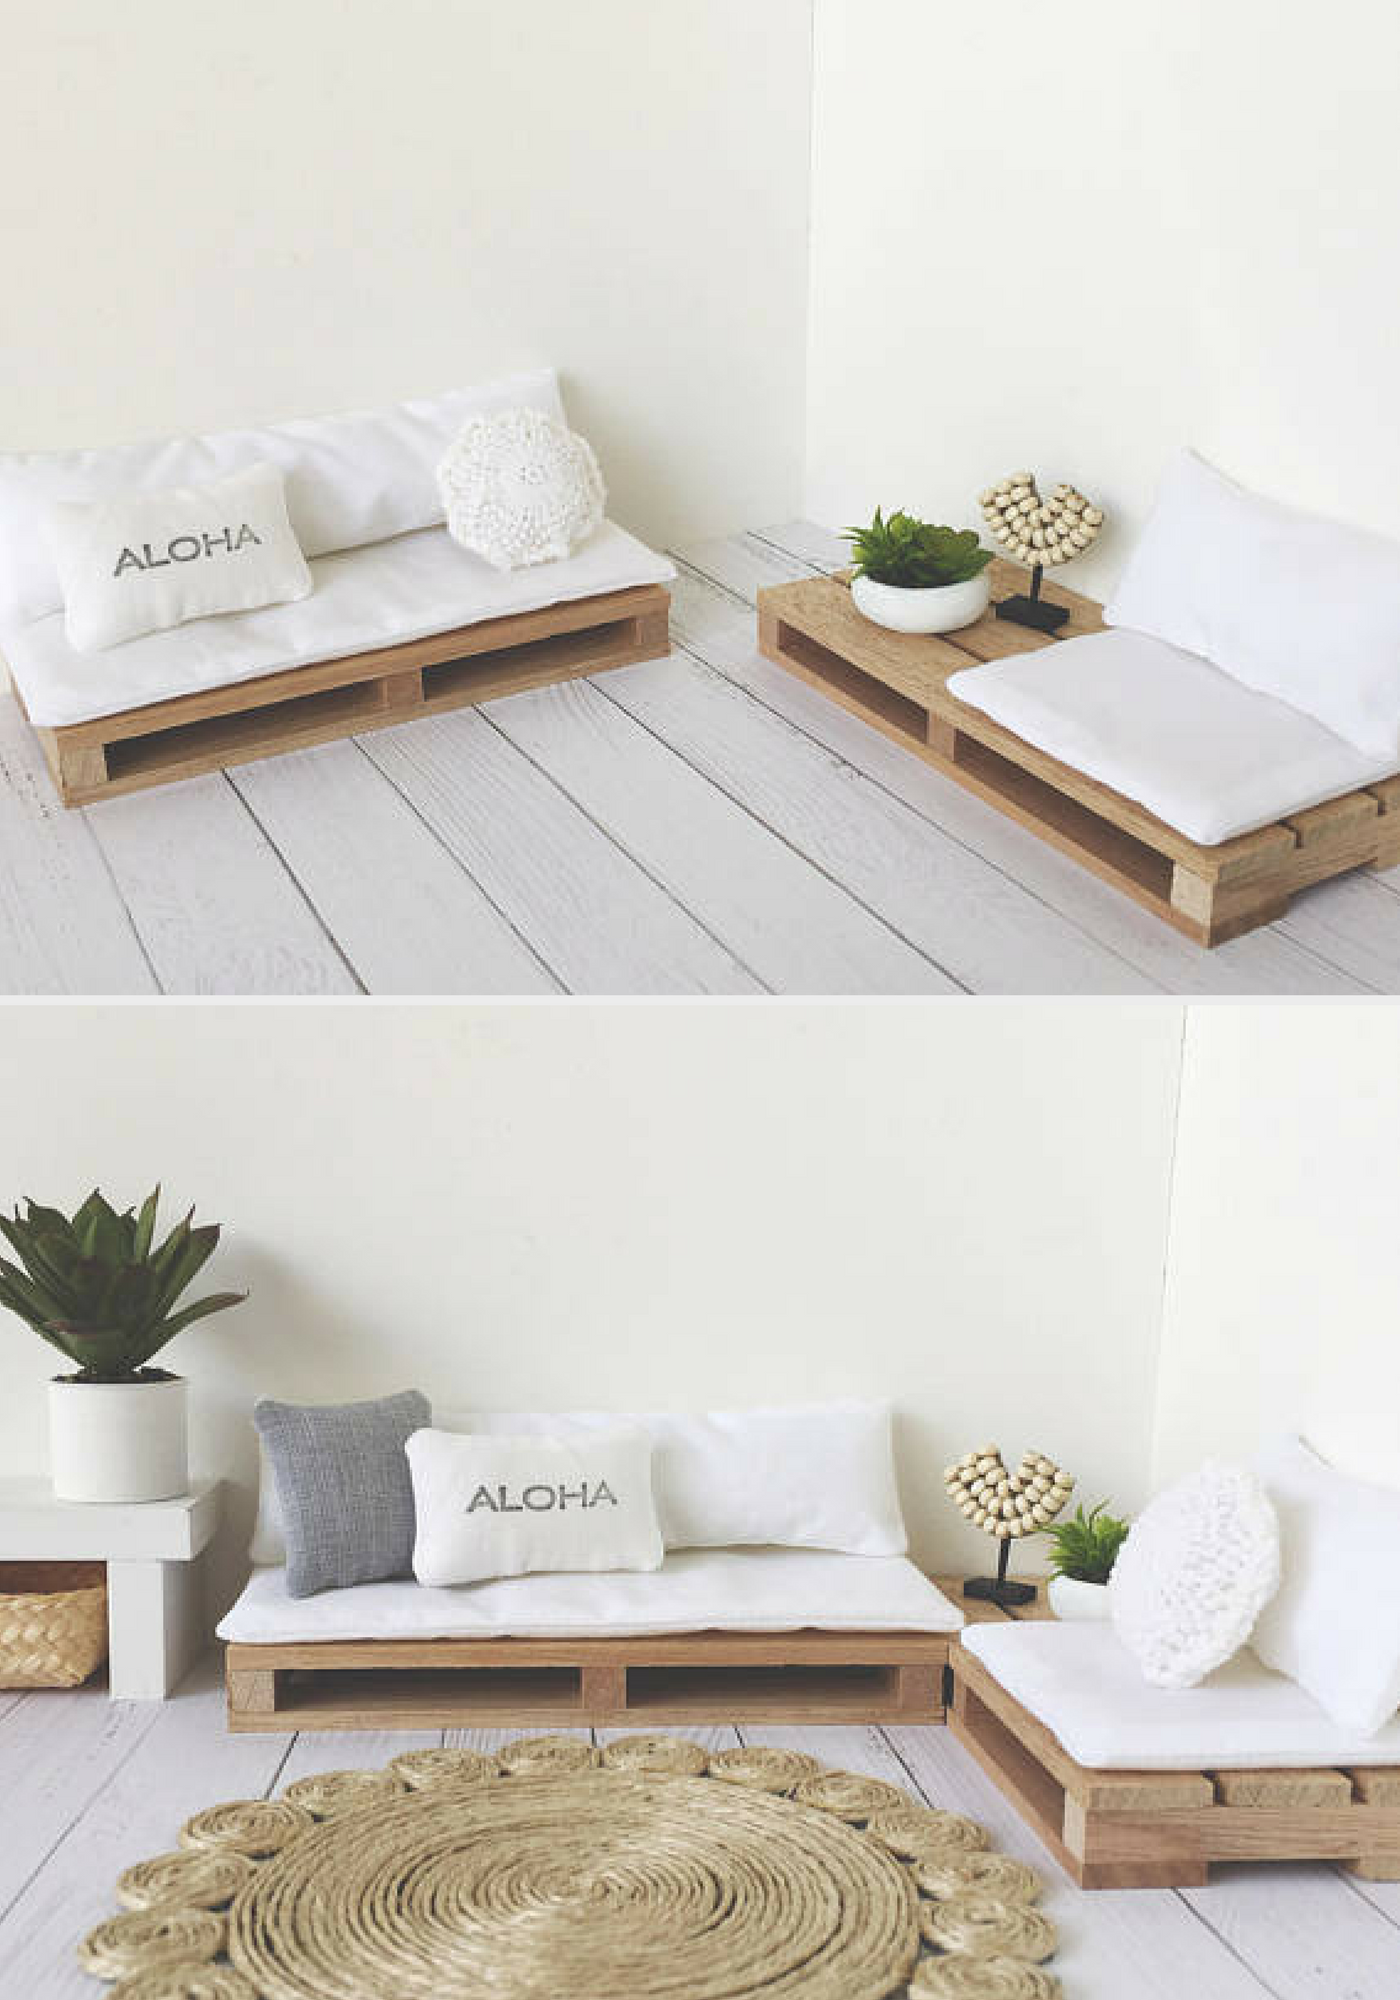 Miniature Pallet Couch Home Decor Diy Living Room Furniture